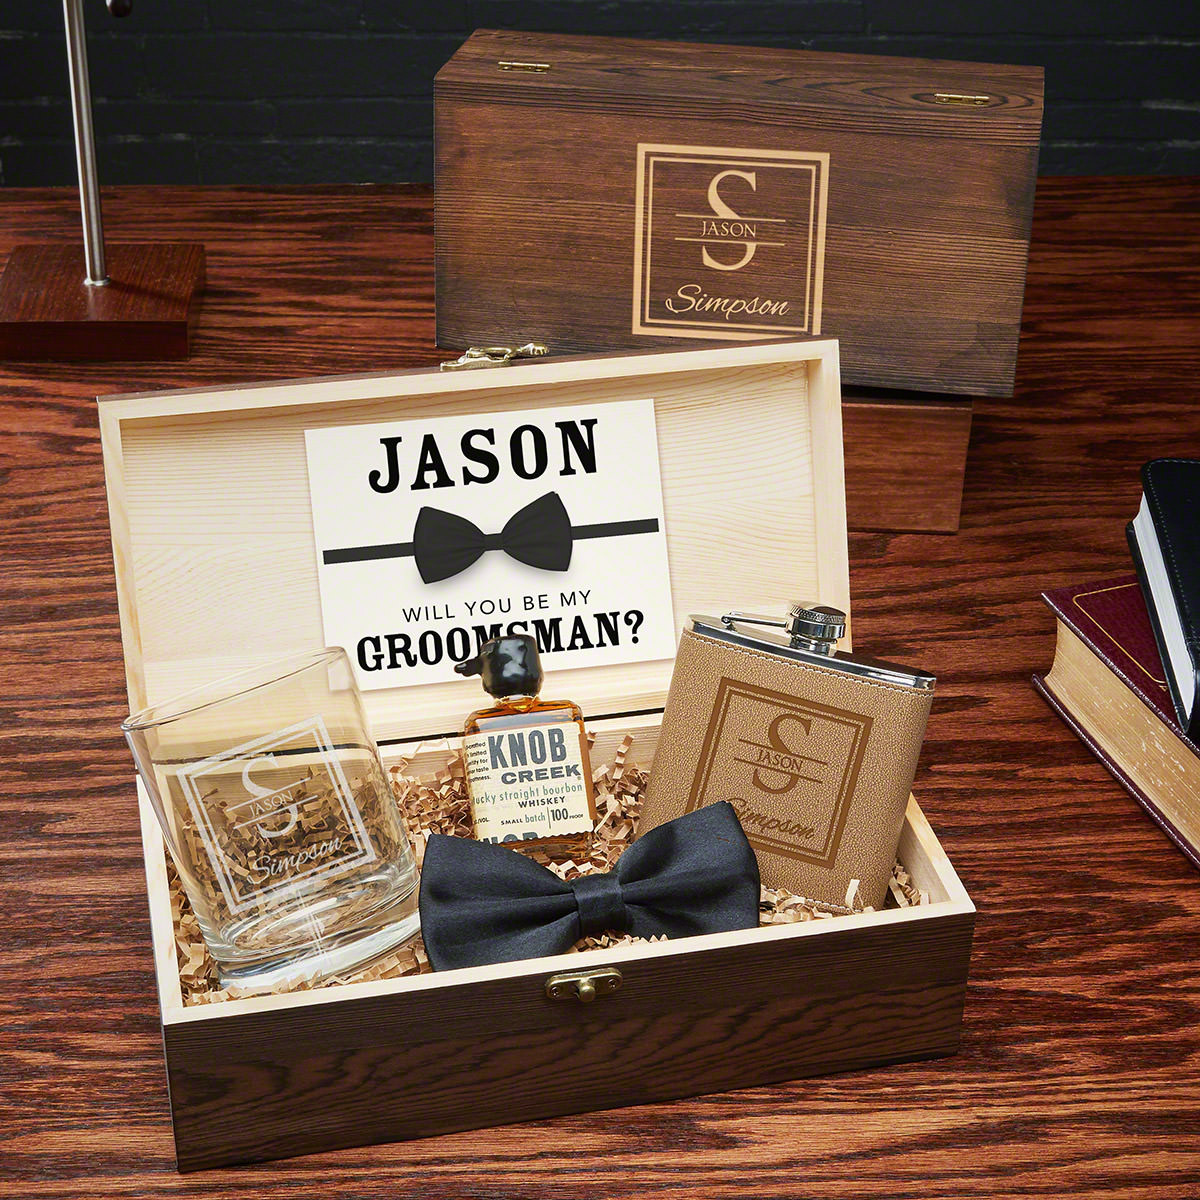 Treat your groomsmen and best man to the best with these personalized best man gifts. Custom engraved with your groomsmen's names and title (best man, groomsmen, usher, father of the groom, etc) these gift sets will be remembered for years to come. 5 pi #best